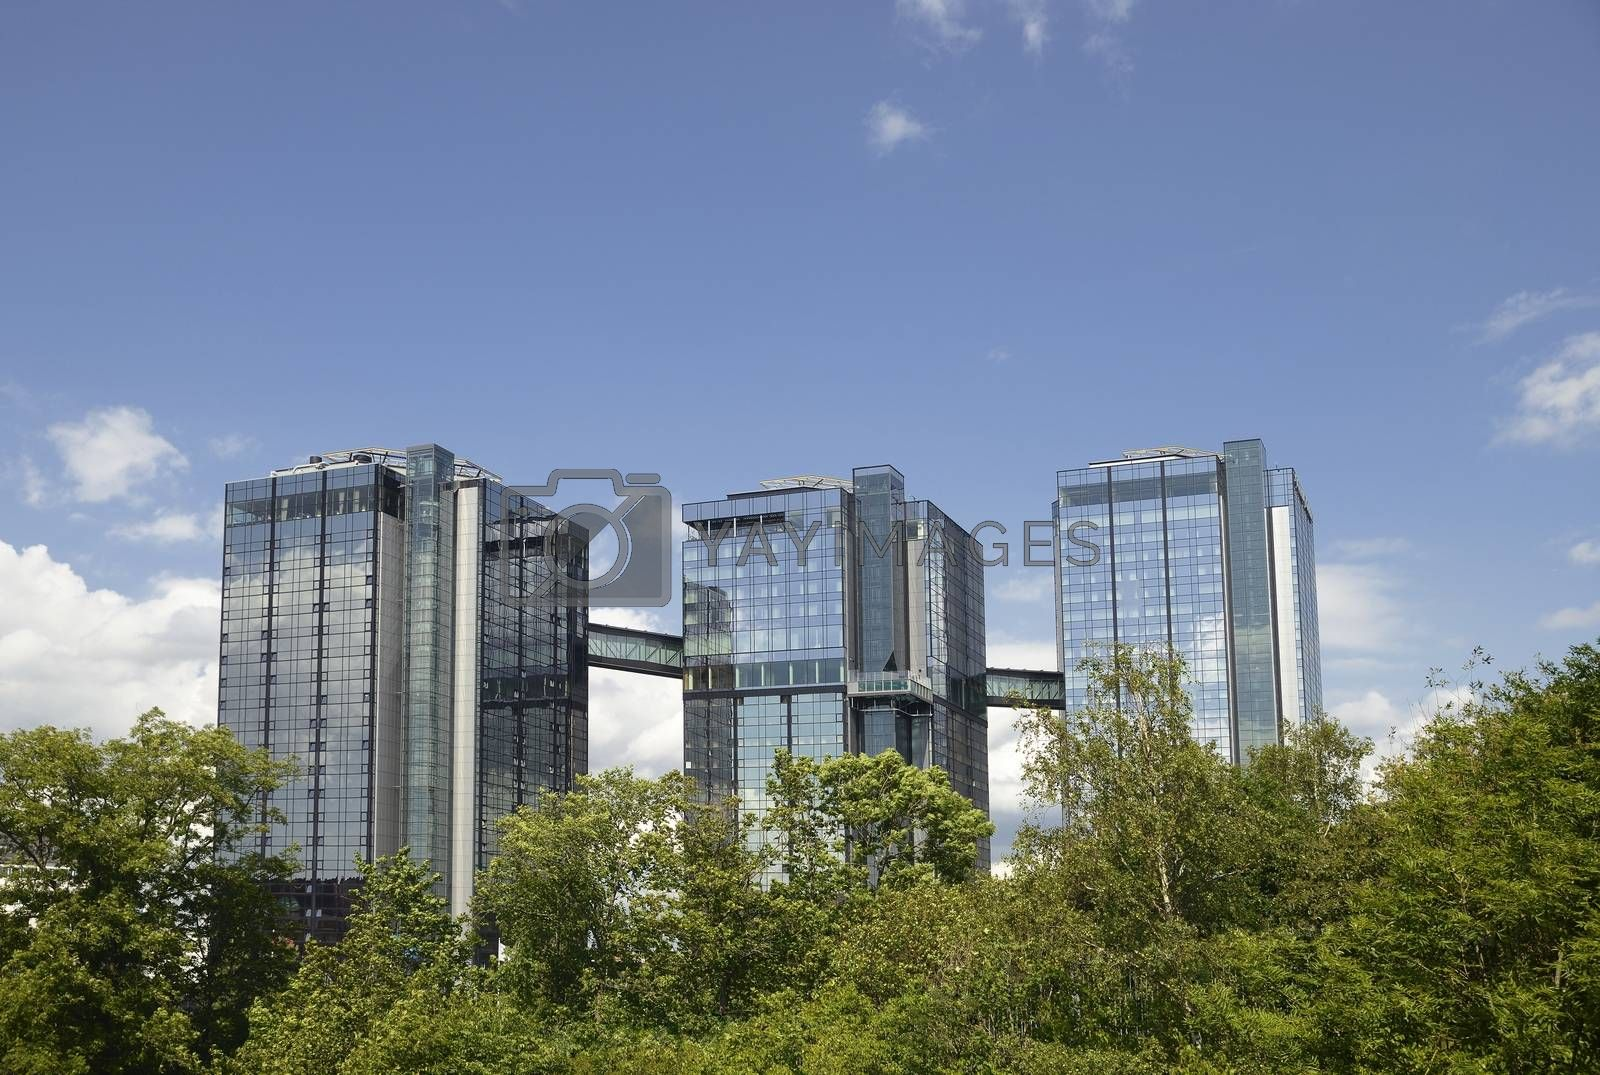 Gothia Towers in Gothenburg (sweden) is a four star hotel and one of Europe's largest with 1,200 rooms housed in three towers between 77 and 100 meters high.